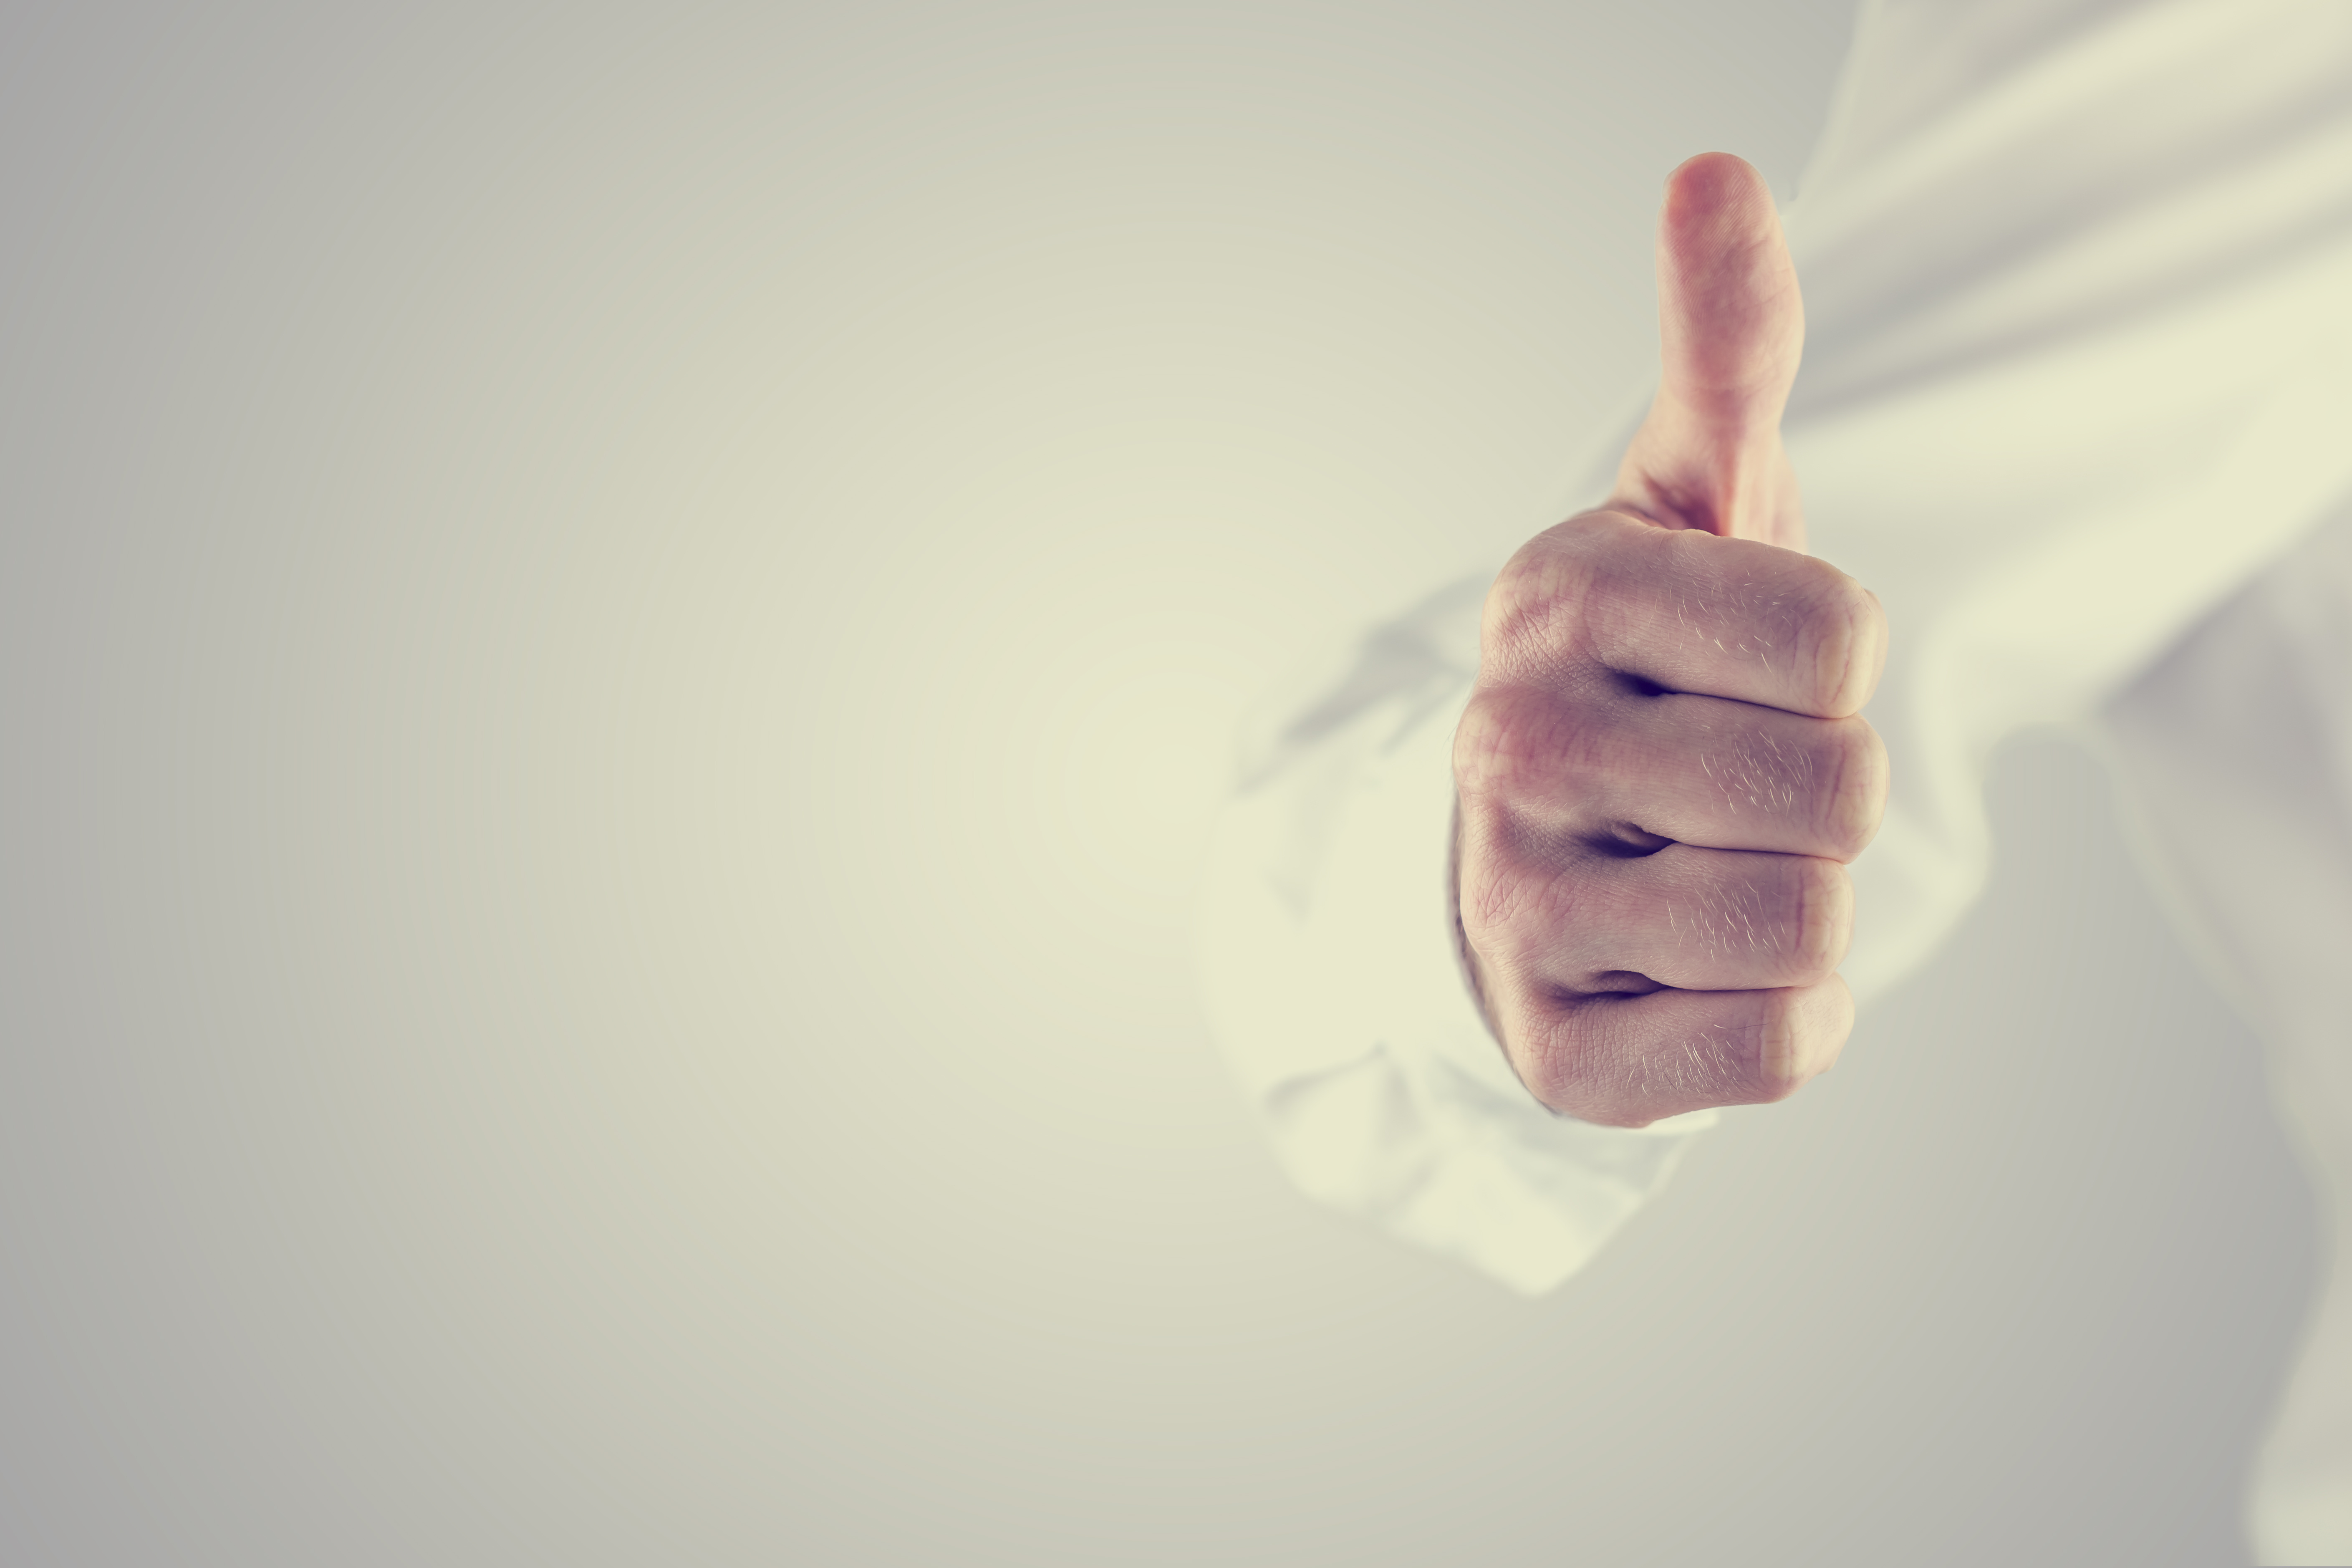 Retro style image of a man giving a thumbs up